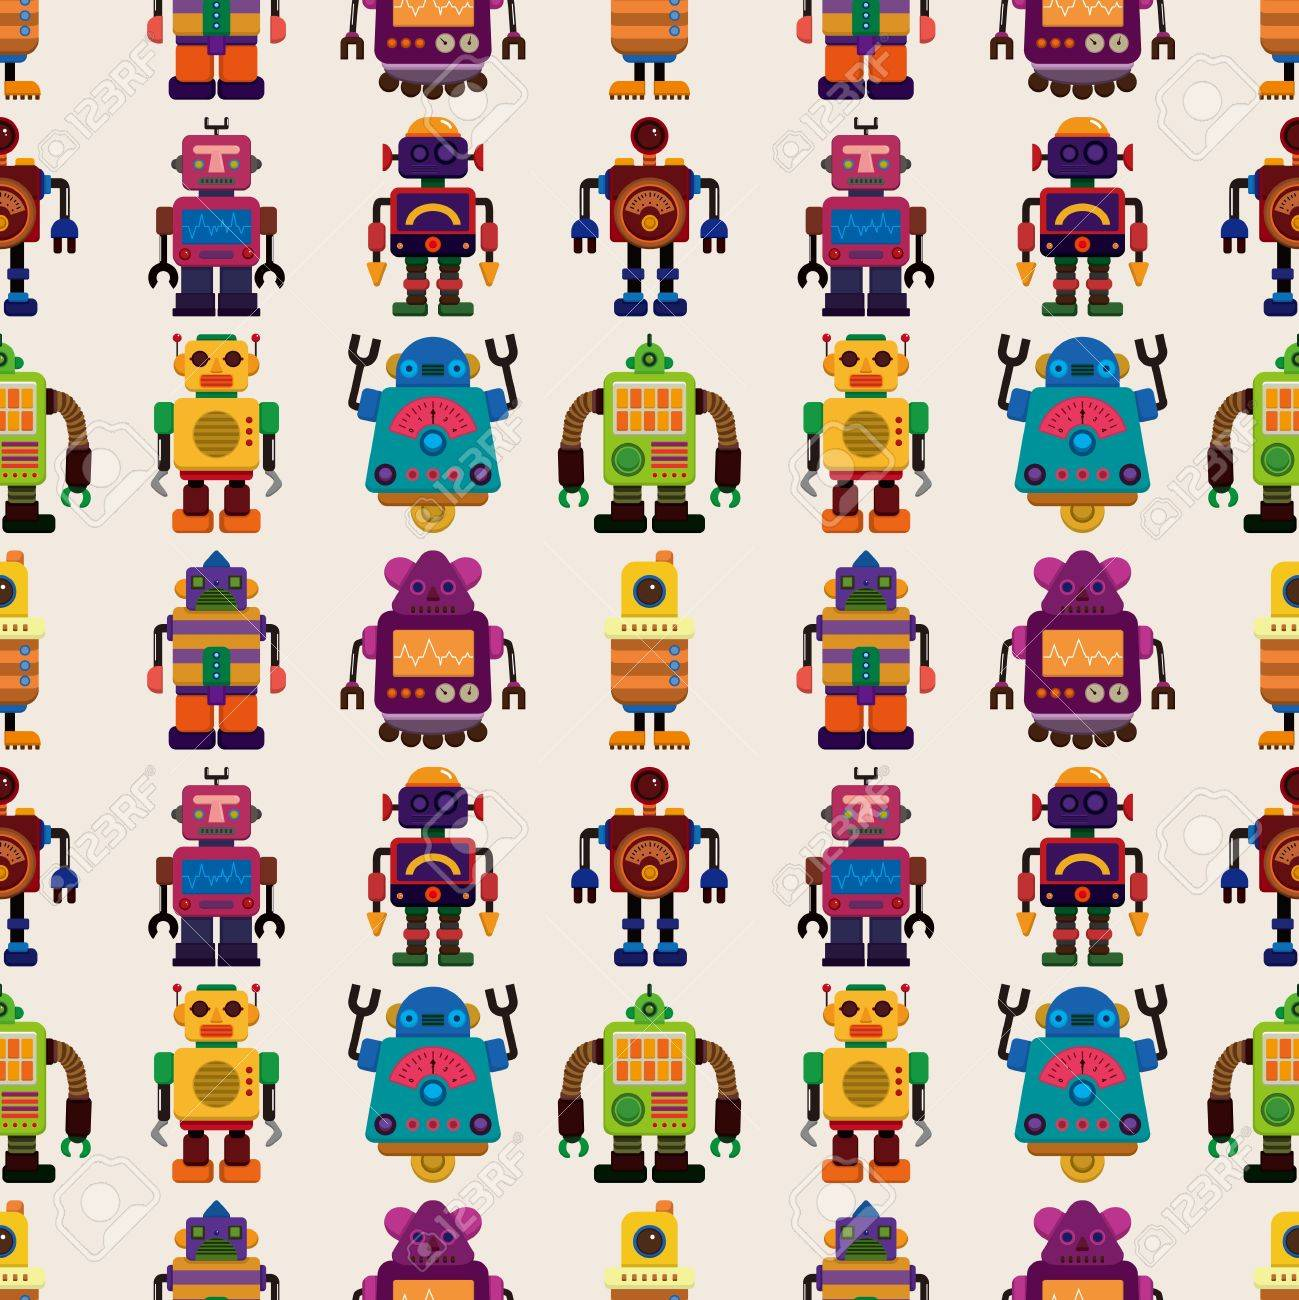 seamless Robot pattern,cartoon illustration Stock Vector - 17560161